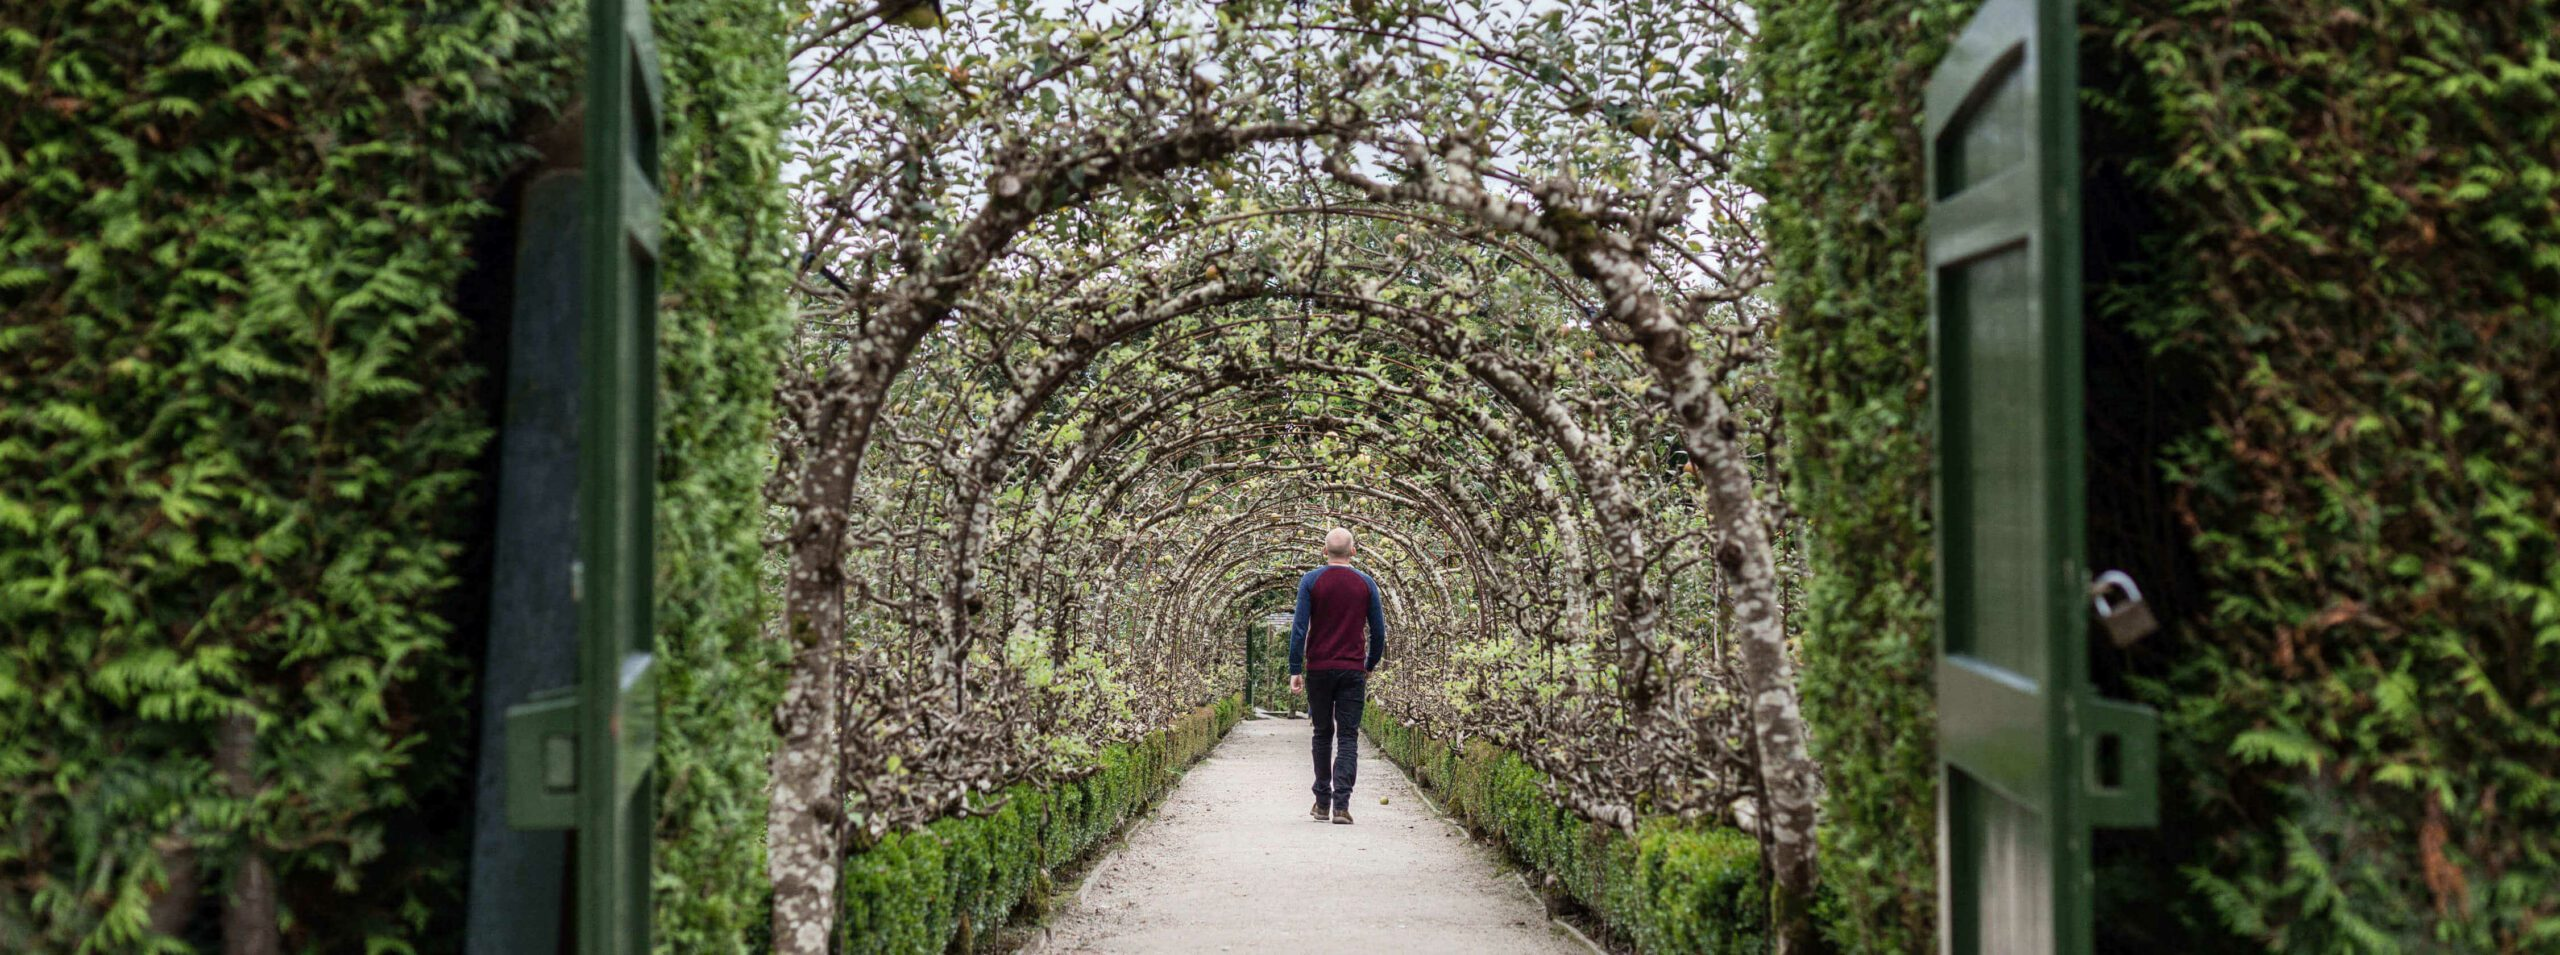 The Lost Gardens of Heligan | St Austell